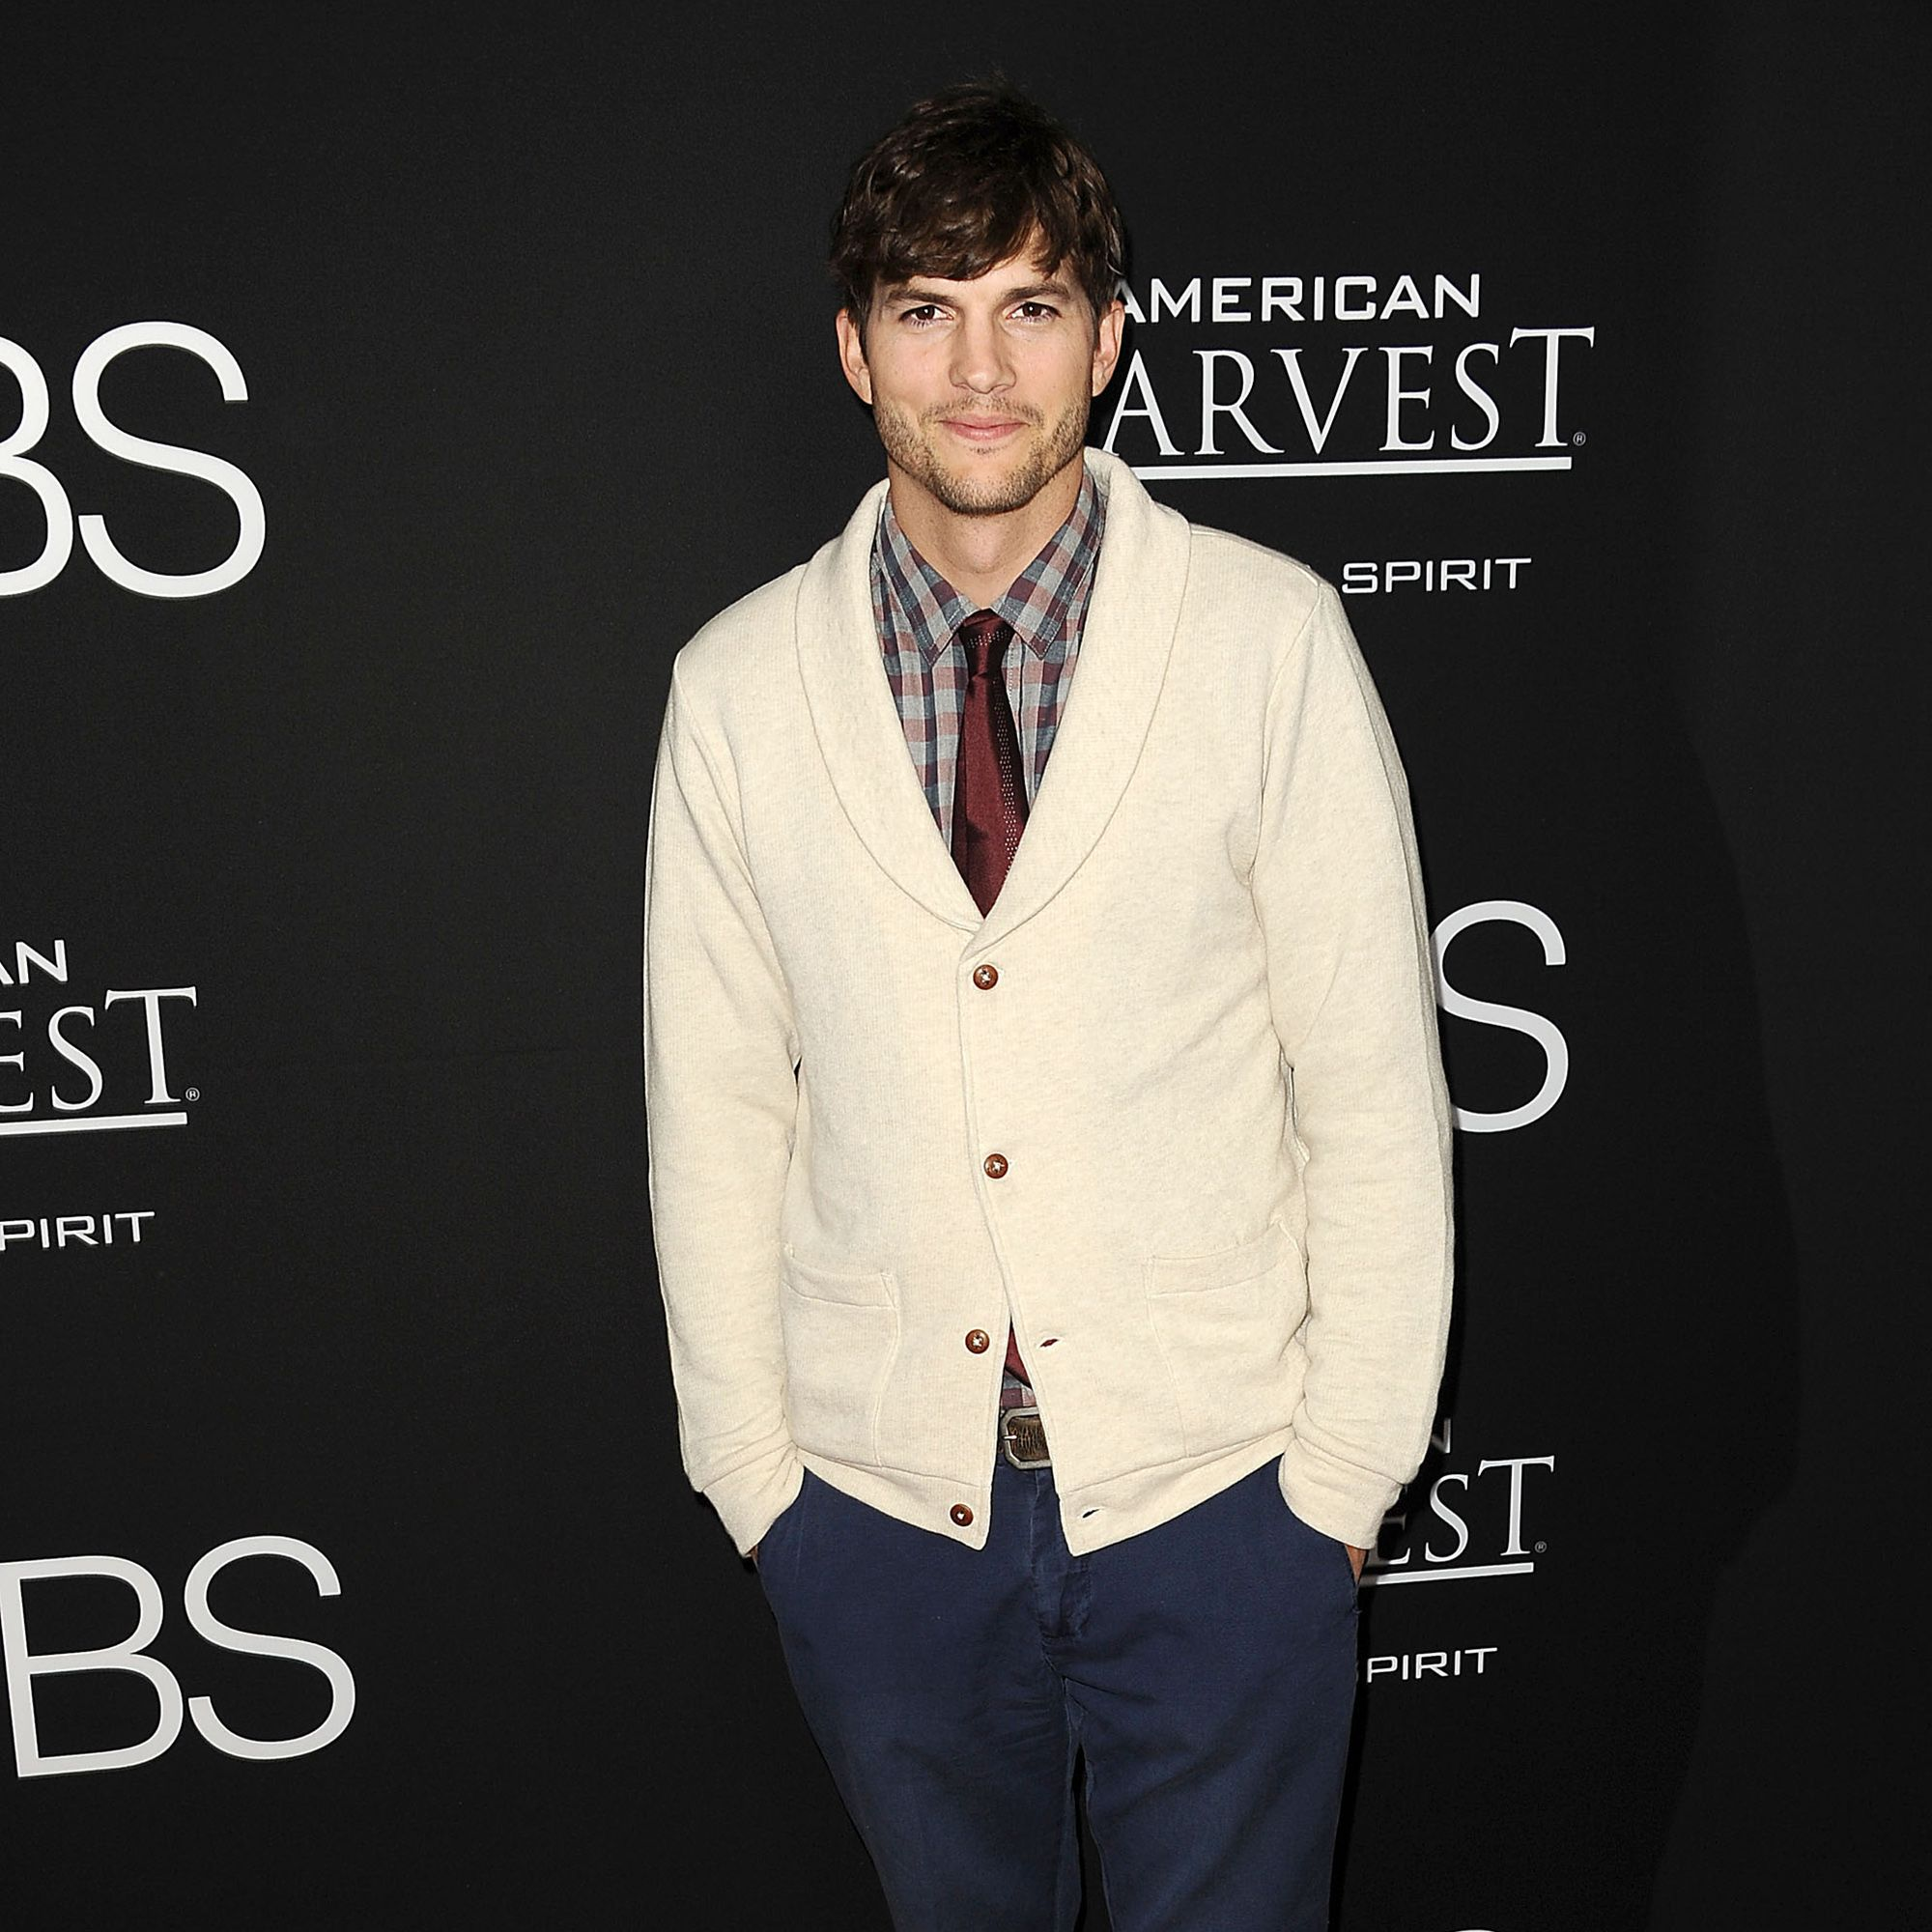 """LOS ANGELES, CA - AUGUST 13:  Actor Ashton Kutcher attends the premiere of """"Jobs"""" at Regal Cinemas L.A. Live on August 13, 2013 in Los Angeles, California.  (Photo by Jason LaVeris/FilmMagic)"""